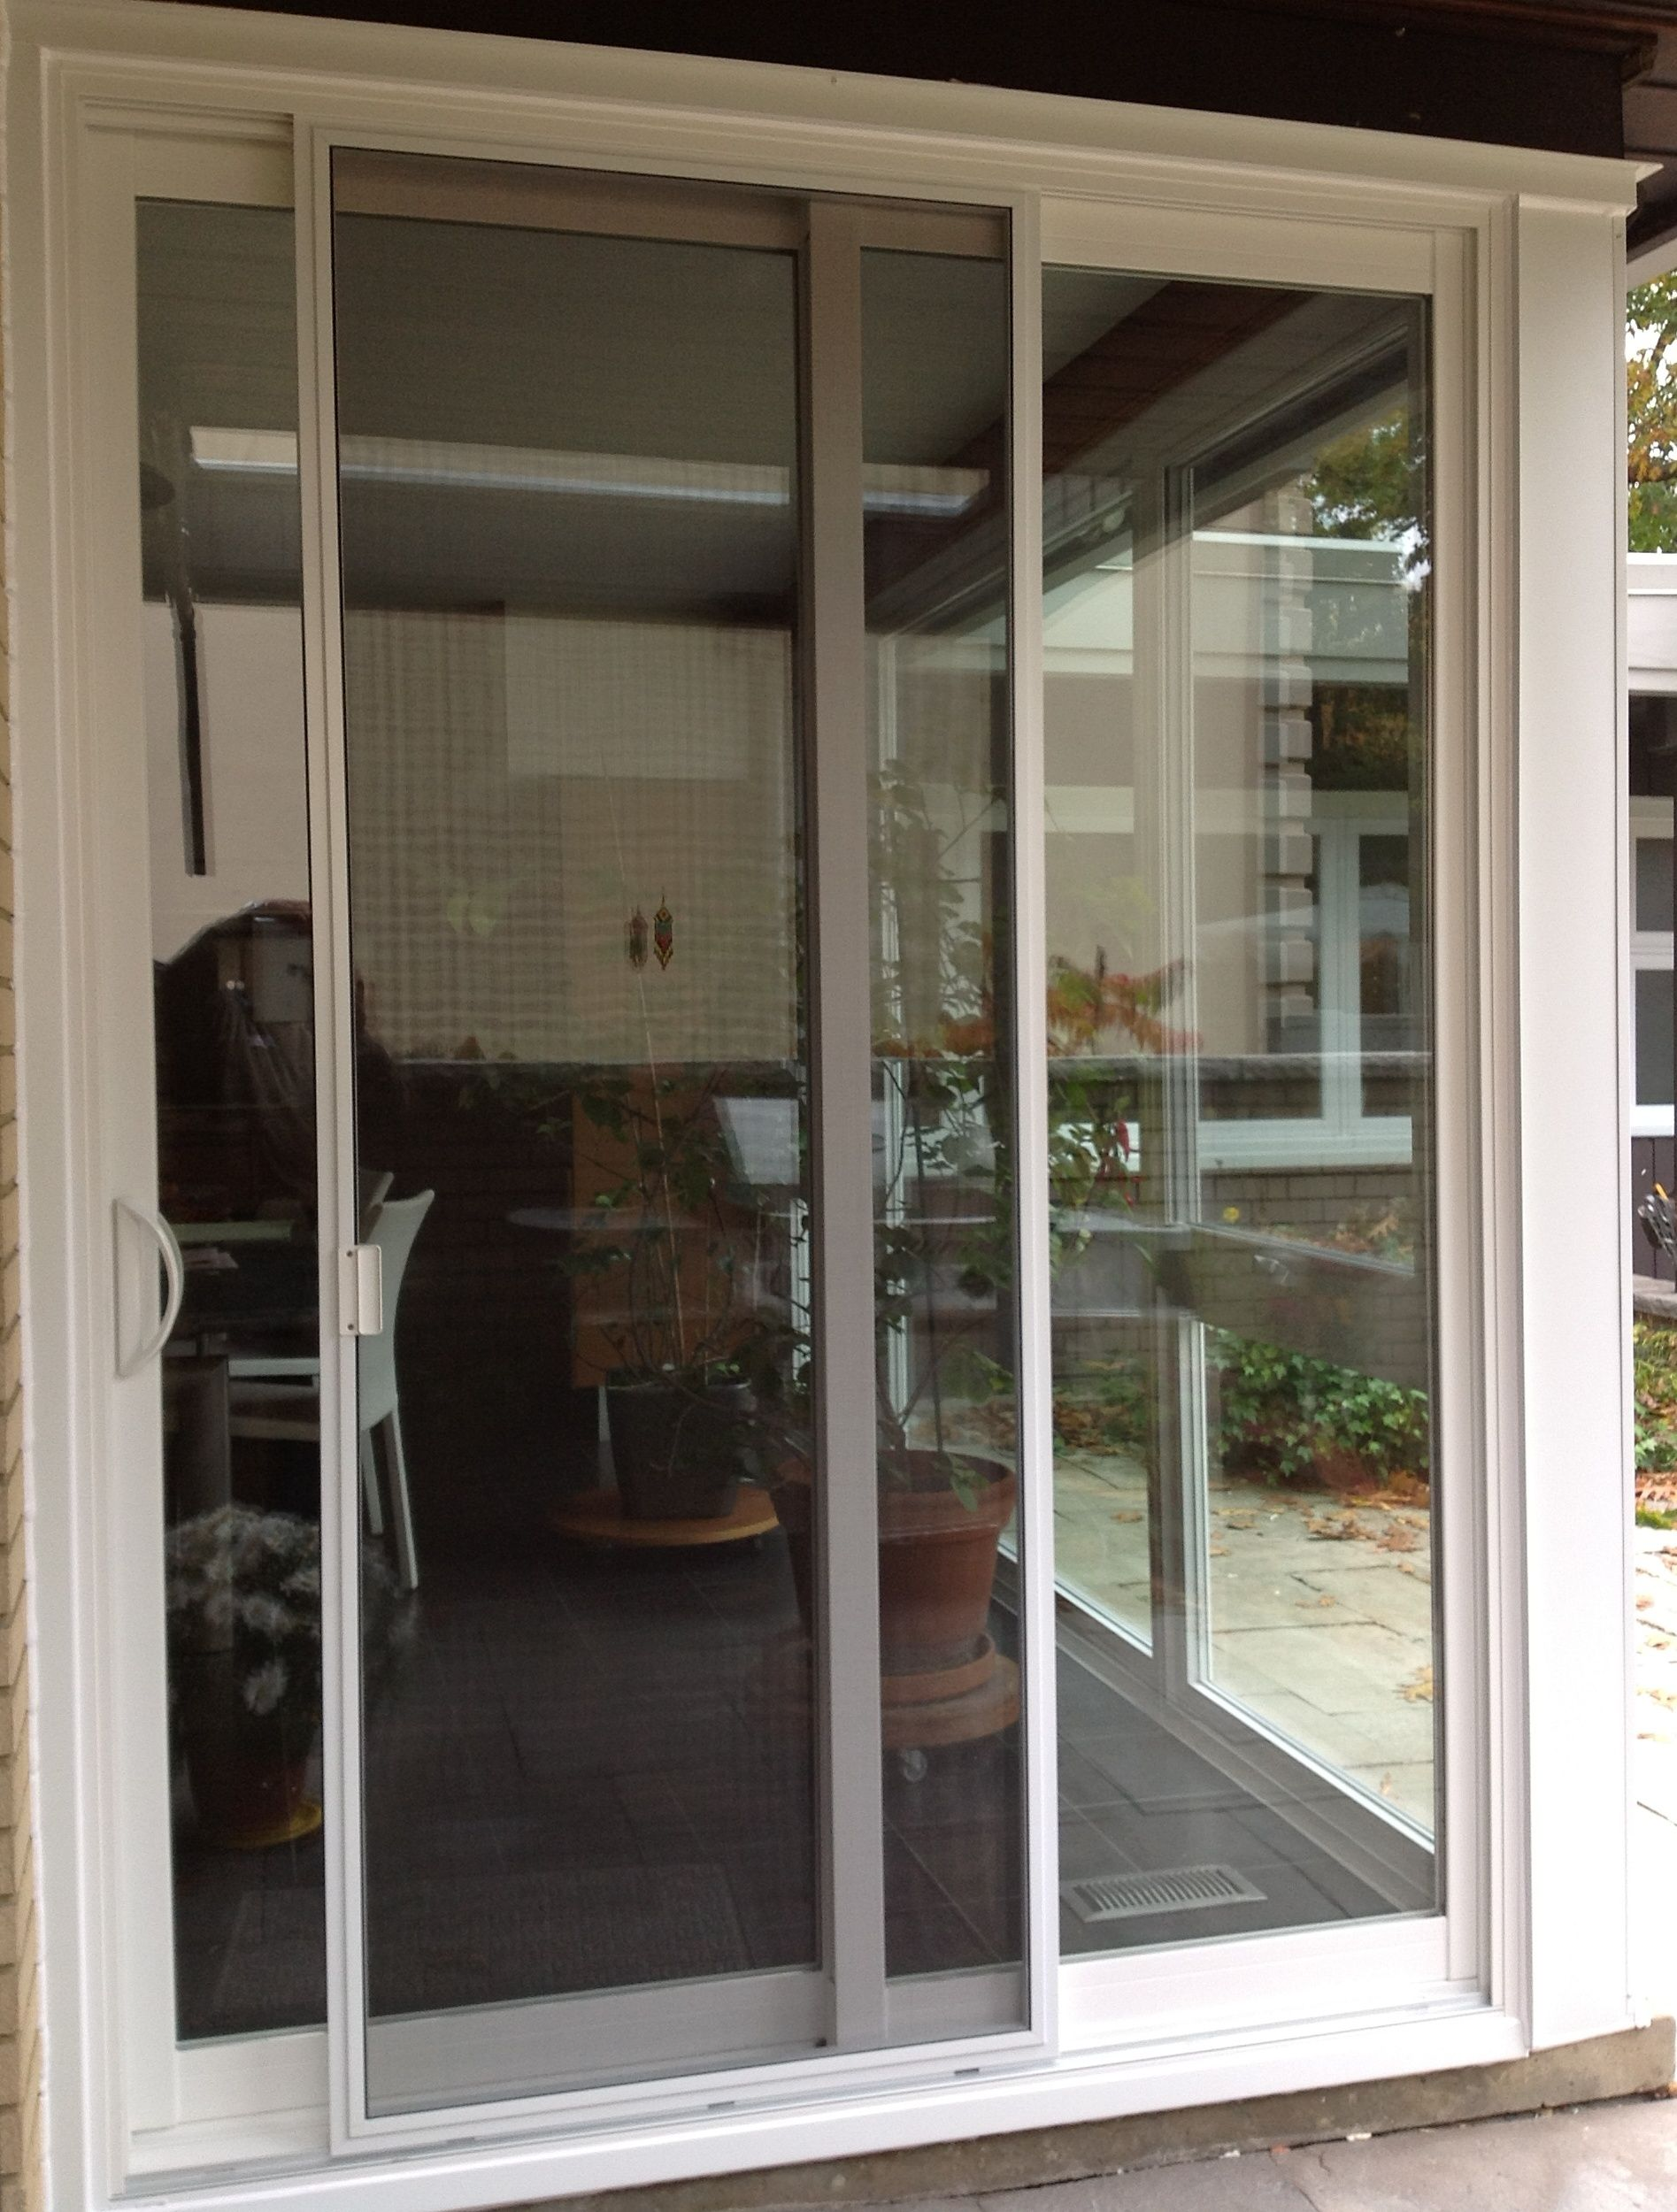 Unique Screen Door for Apartment Balcony